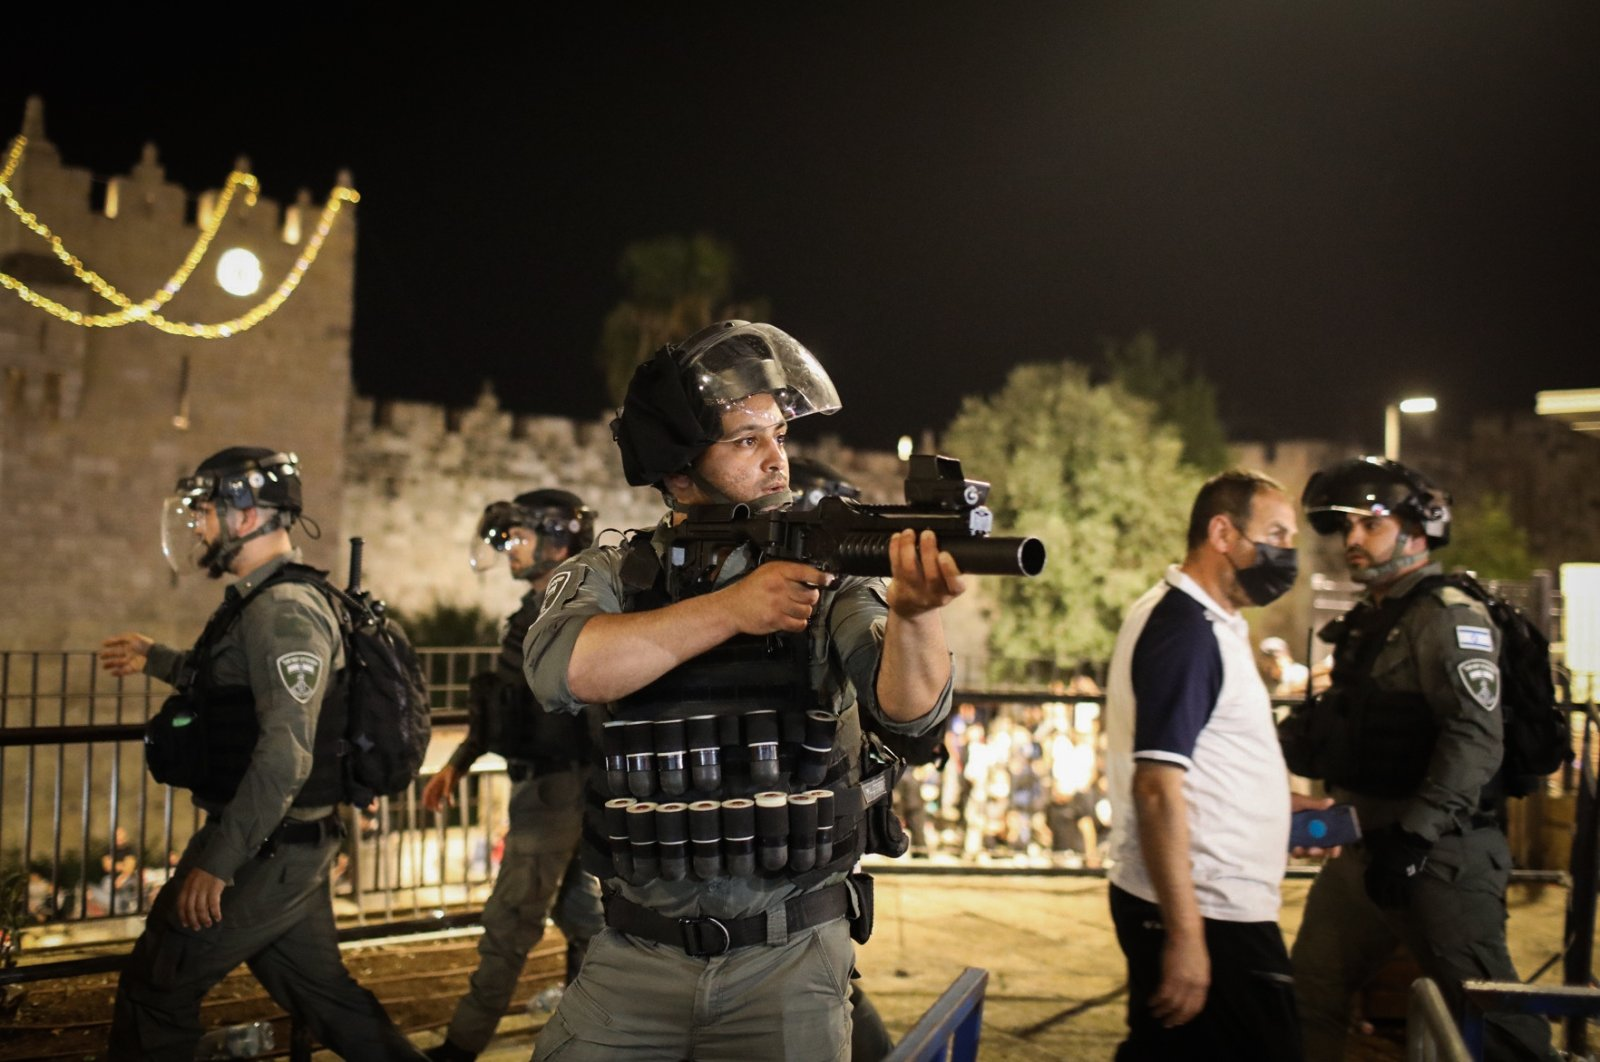 An Israeli police officer holds a gun during Palestinian demonstrations against the forced evictions from the Sheikh Jarrah neighborhood, occupied East Jerusalem, Palestine, May 8, 2021. (Photo by Getty Images)